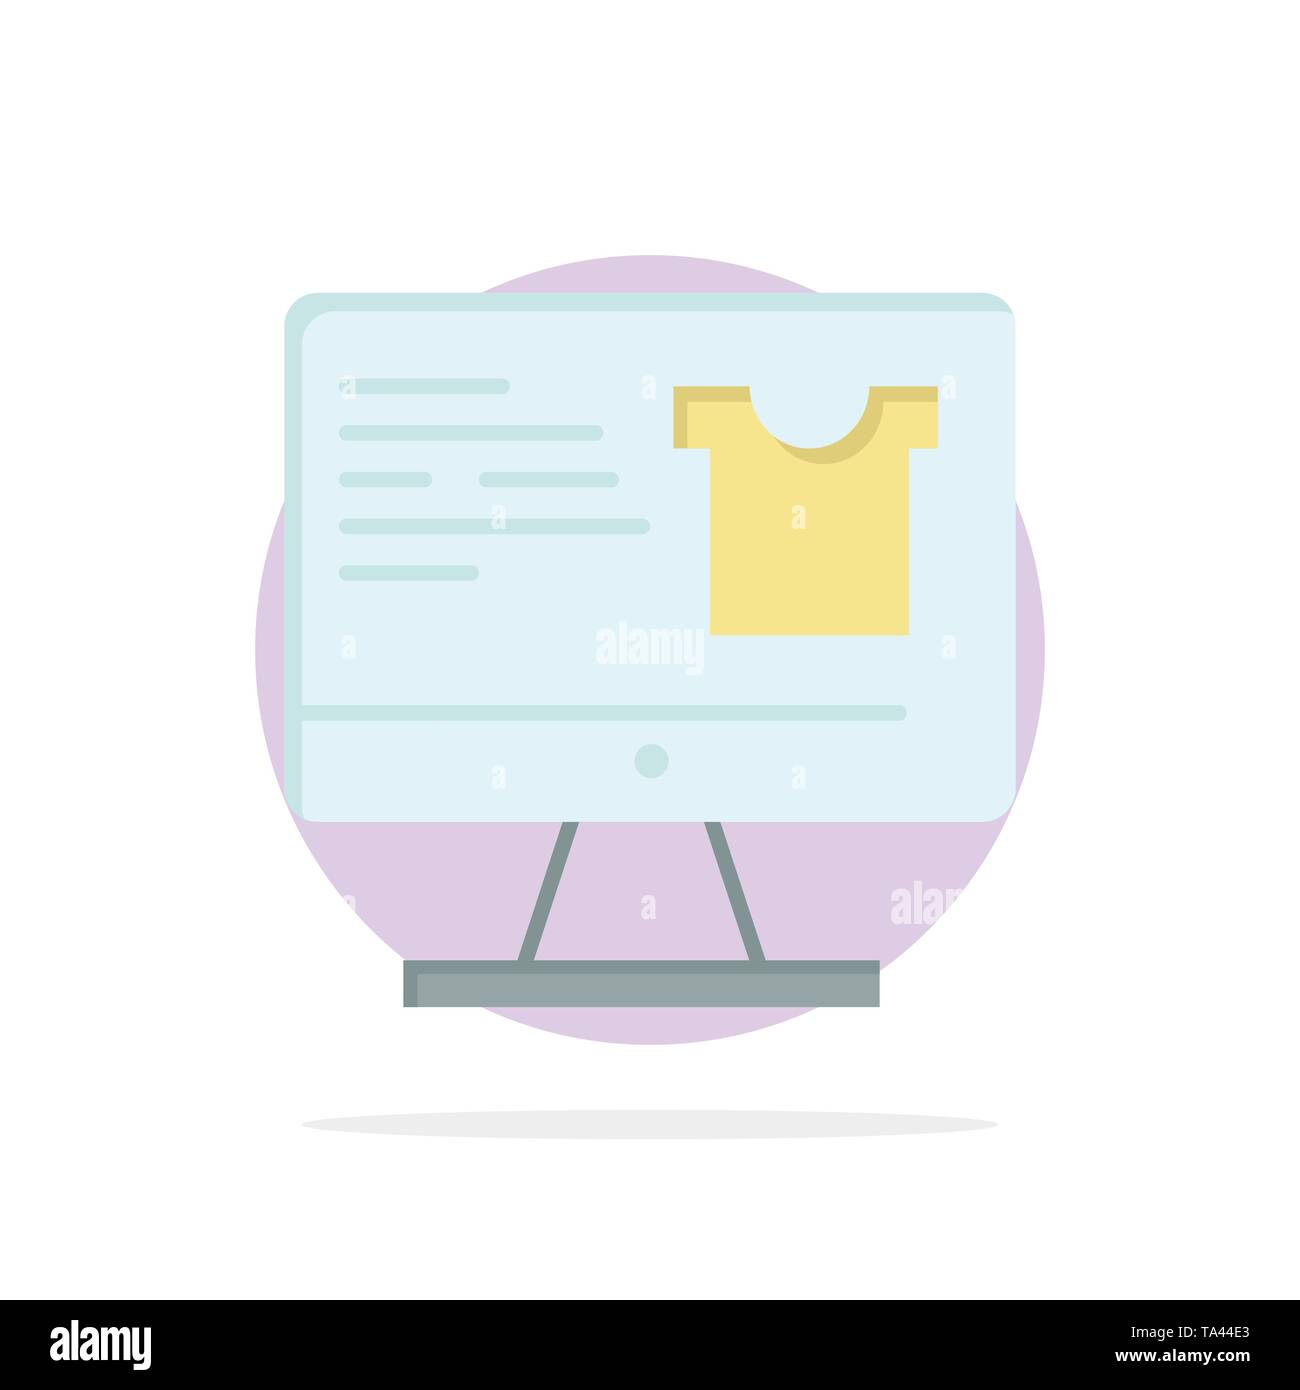 Computer, Screen, Monitor, Shopping Abstract Circle Background Flat color Icon - Stock Image